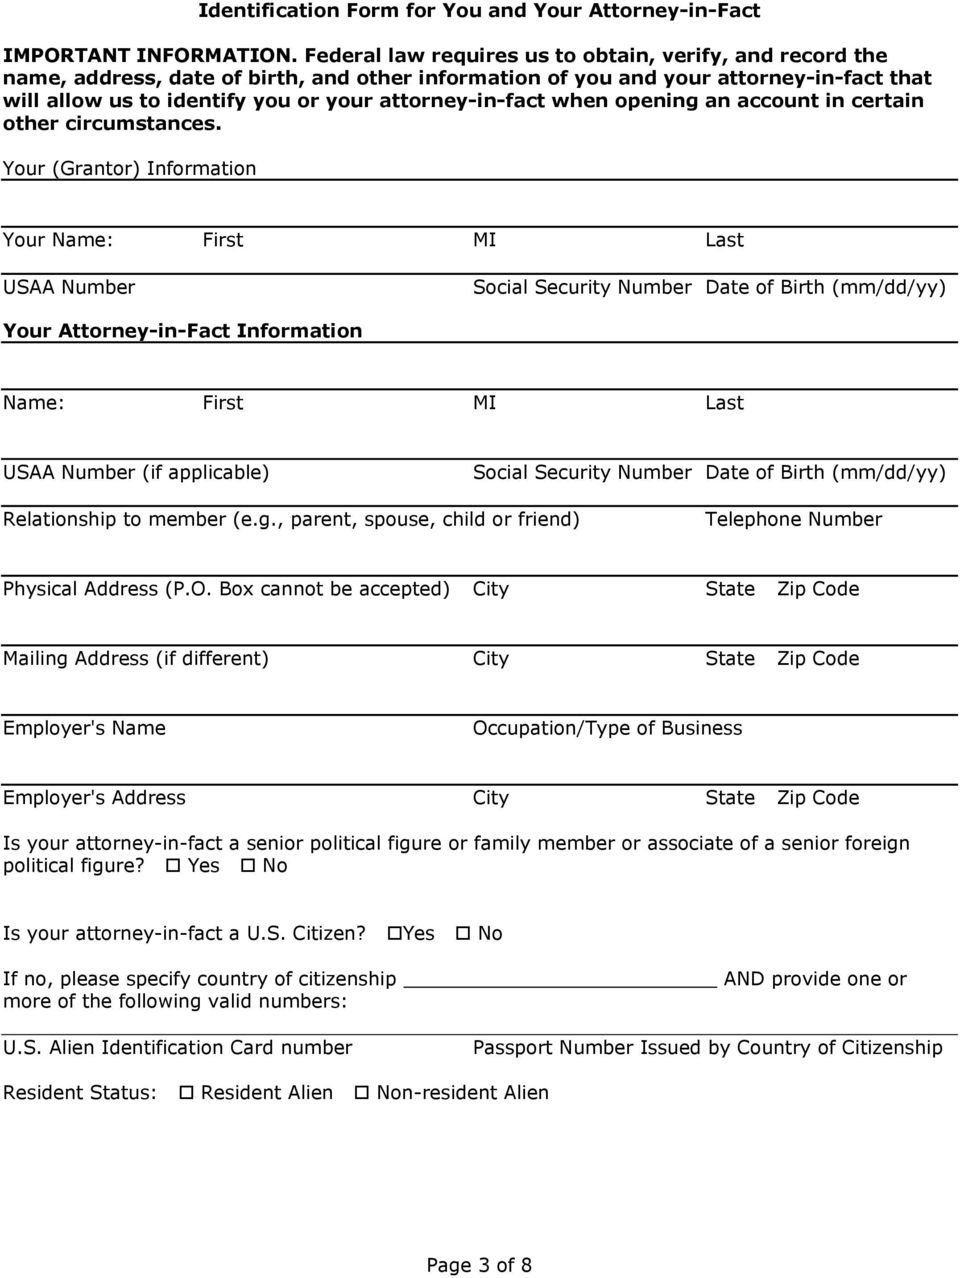 power of attorney form usaa  USAA Power of Attorney - PDF Free Download